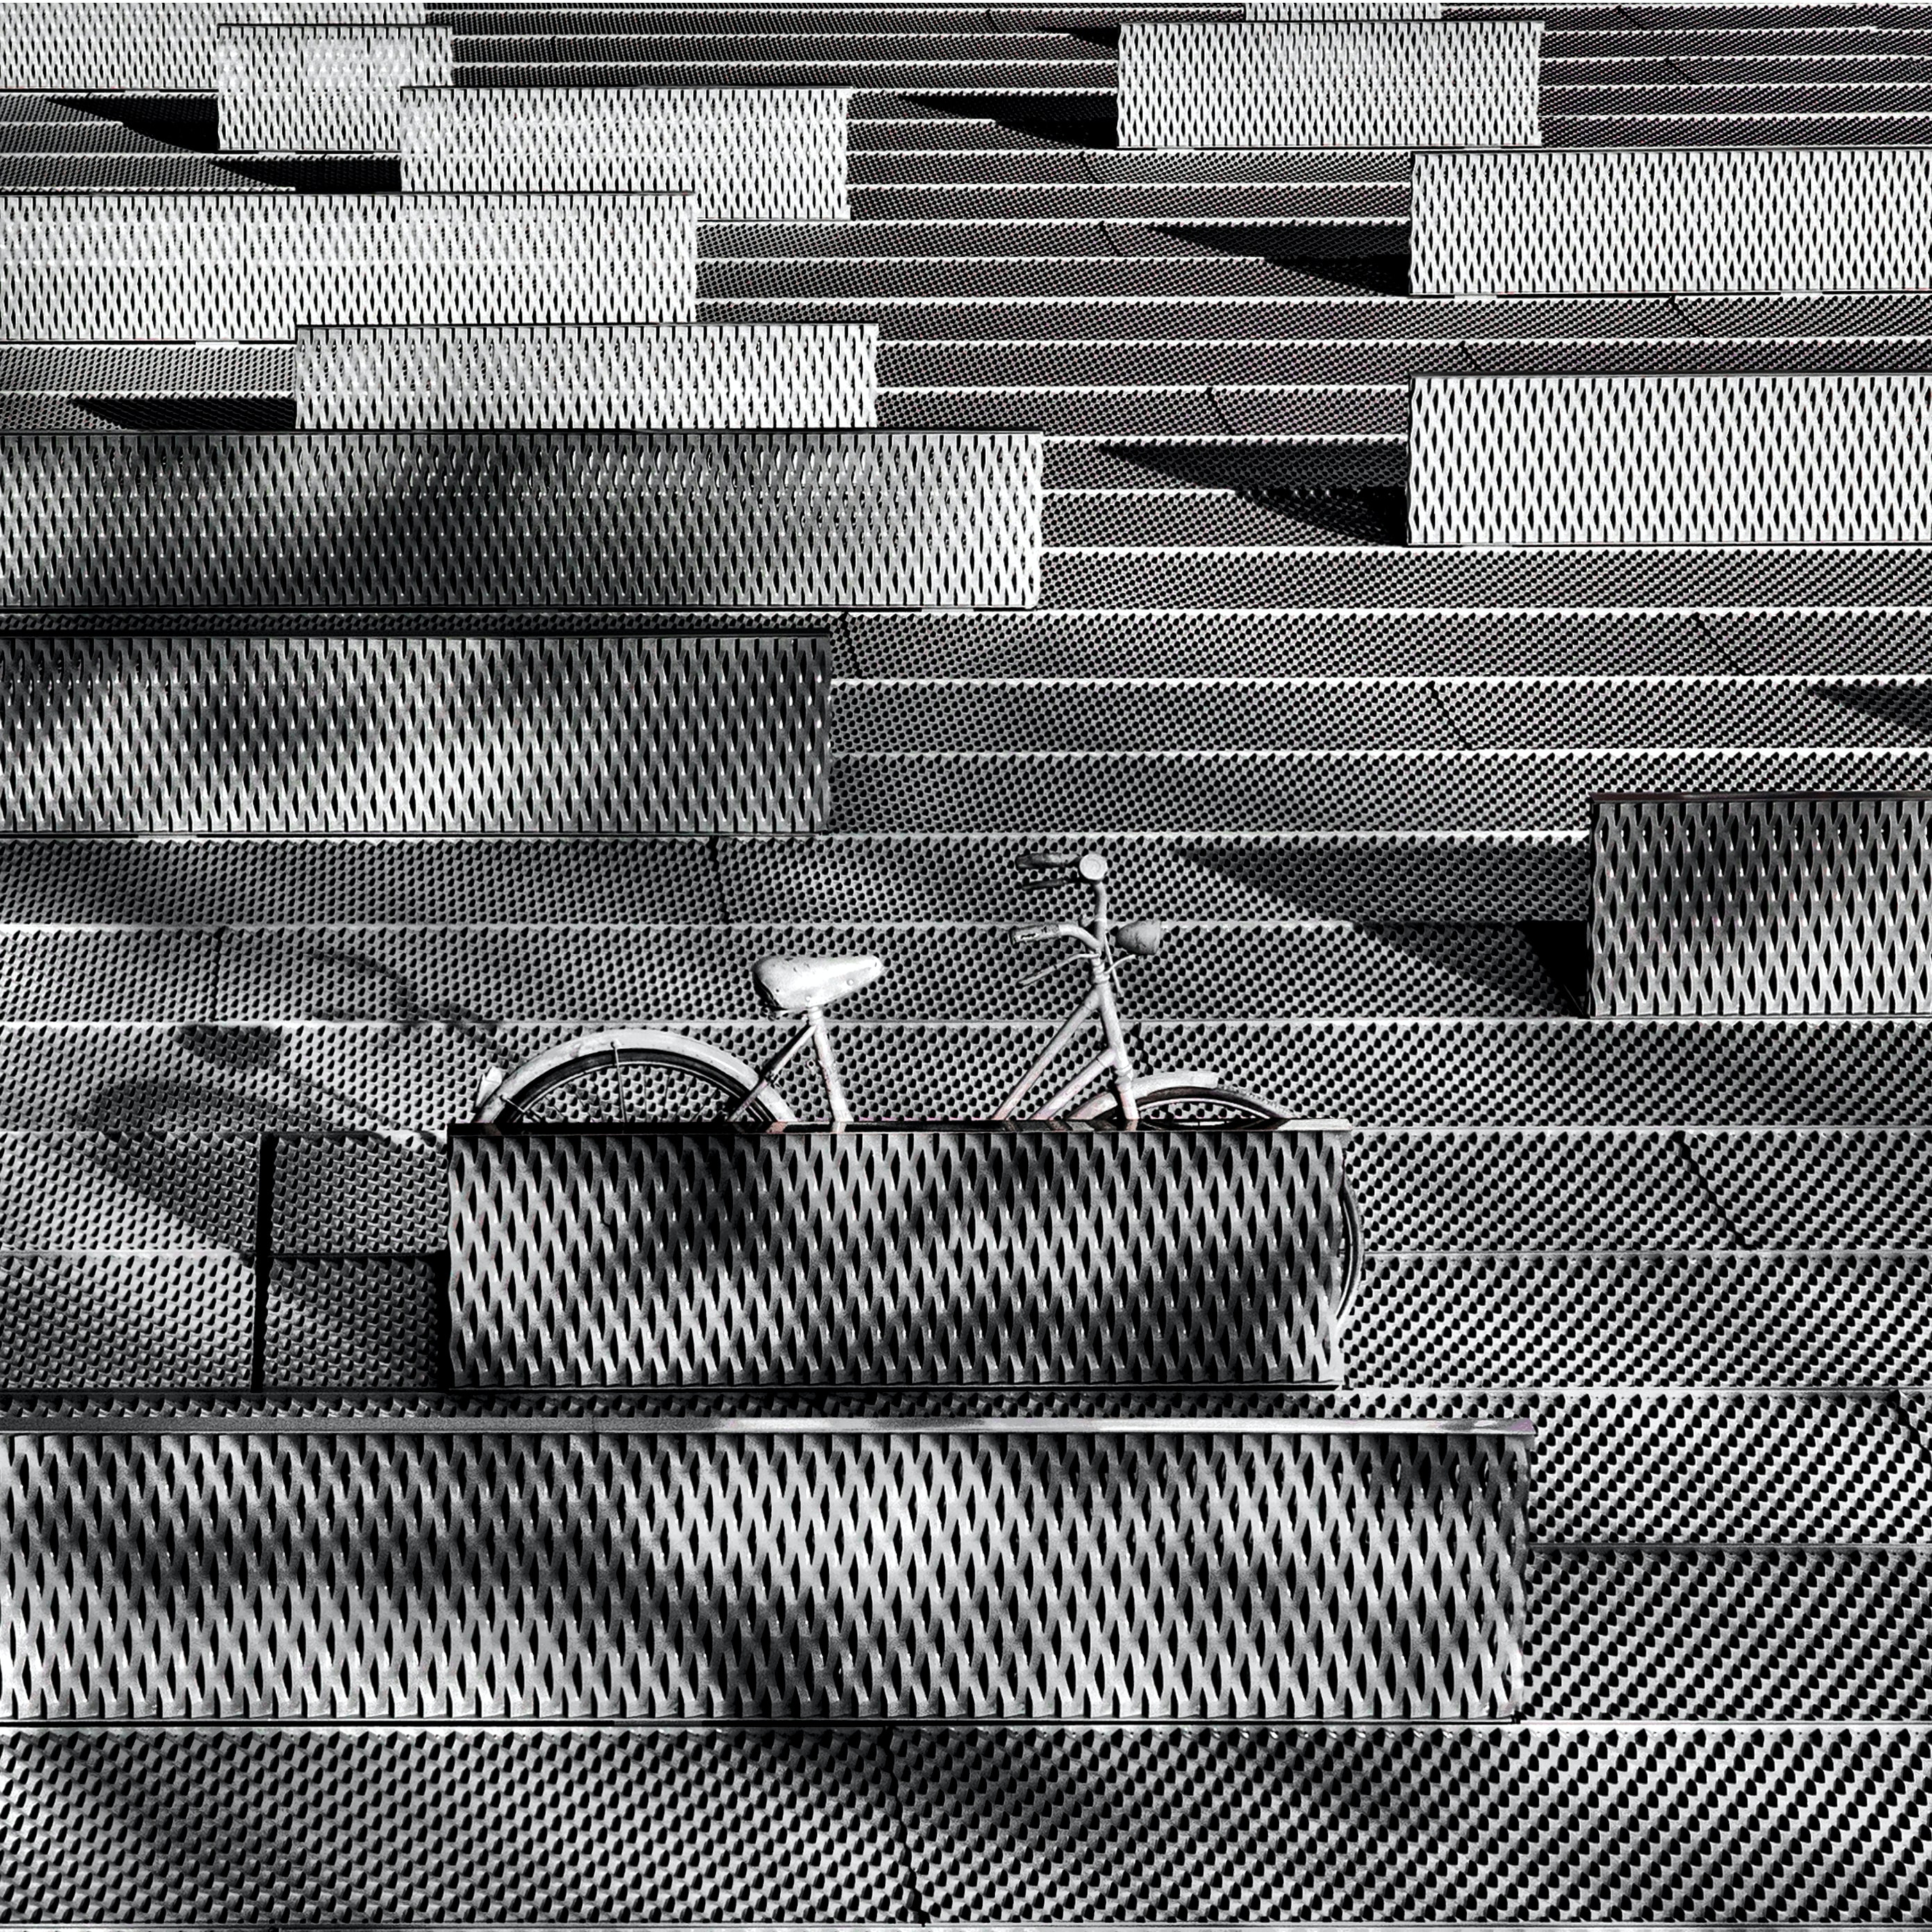 A gray bicycle parked on a gray latticework surface